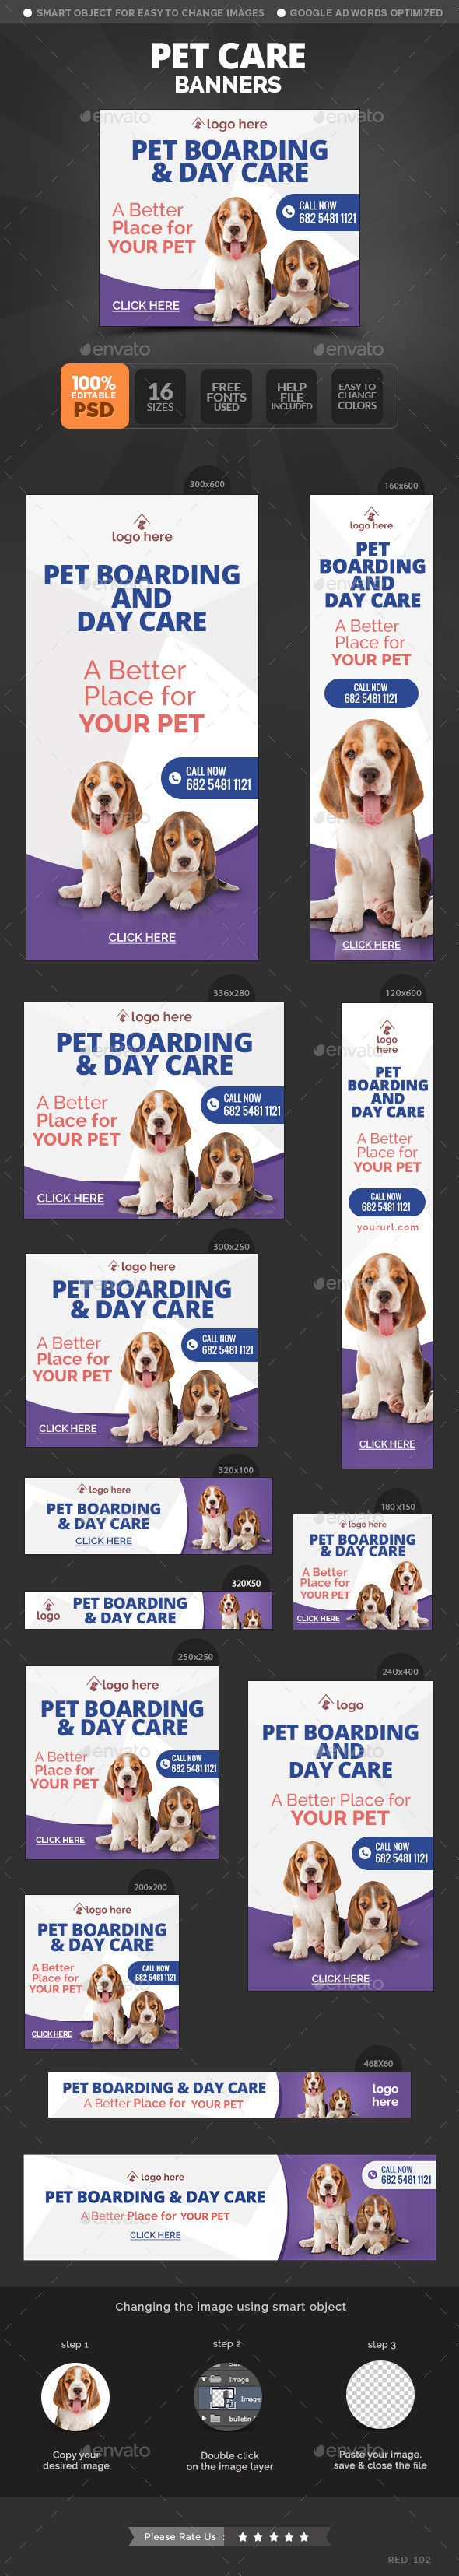 Pet Care Banners on Behance